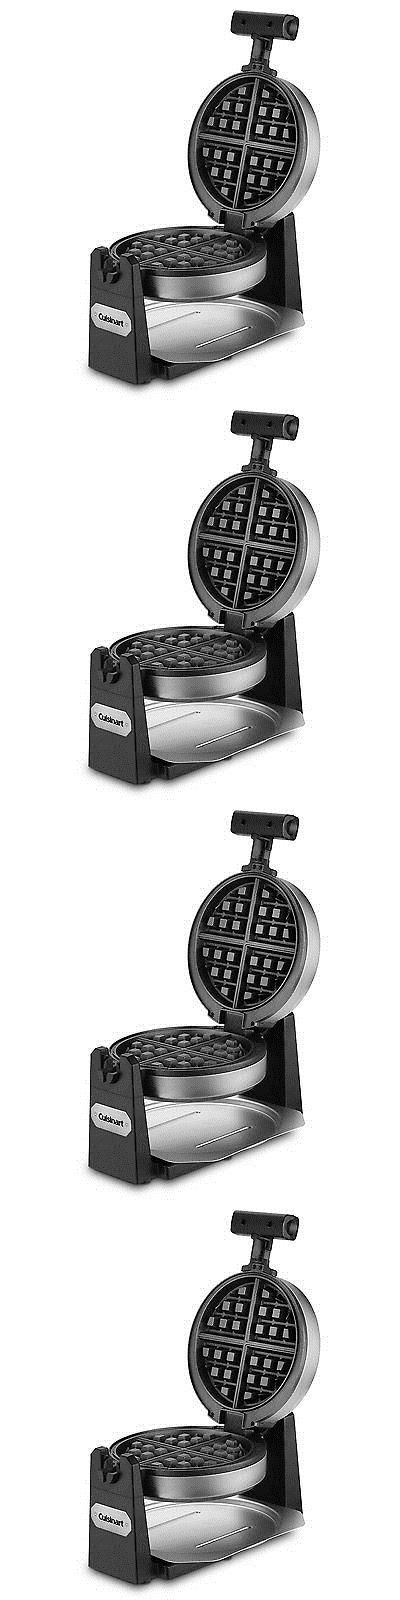 Waffle Makers 168763: Best Belgian Waffle Maker Machine Iron Gourmet Baker Breakfast Commercial -> BUY IT NOW ONLY: $54.77 on eBay!